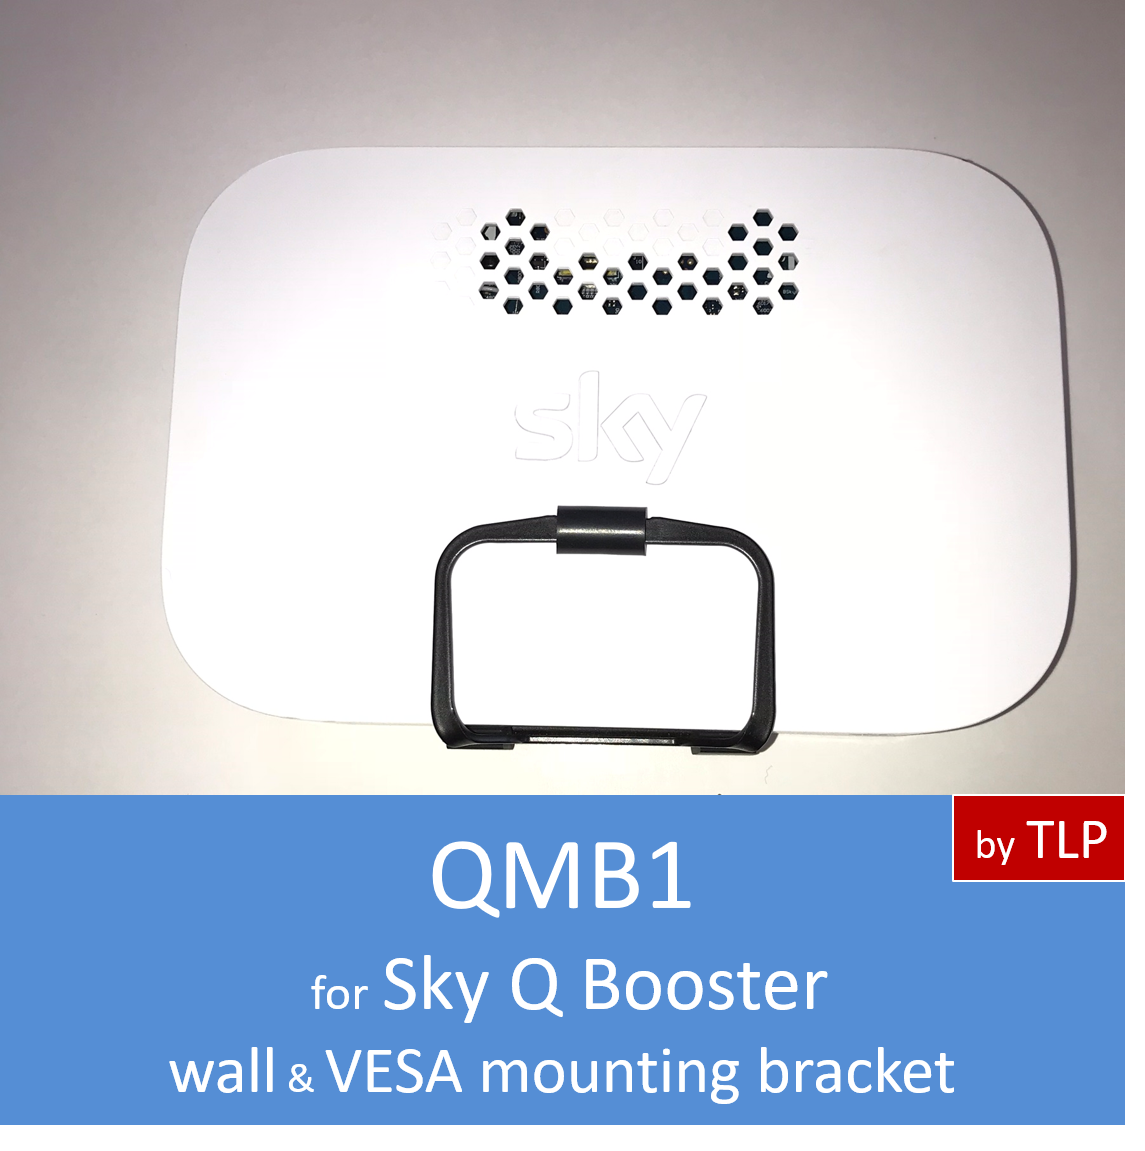 http://triplelinkproducts.co.uk/wp-content/uploads/2018/07/QMB1-for-Sky-Q-Booster.png